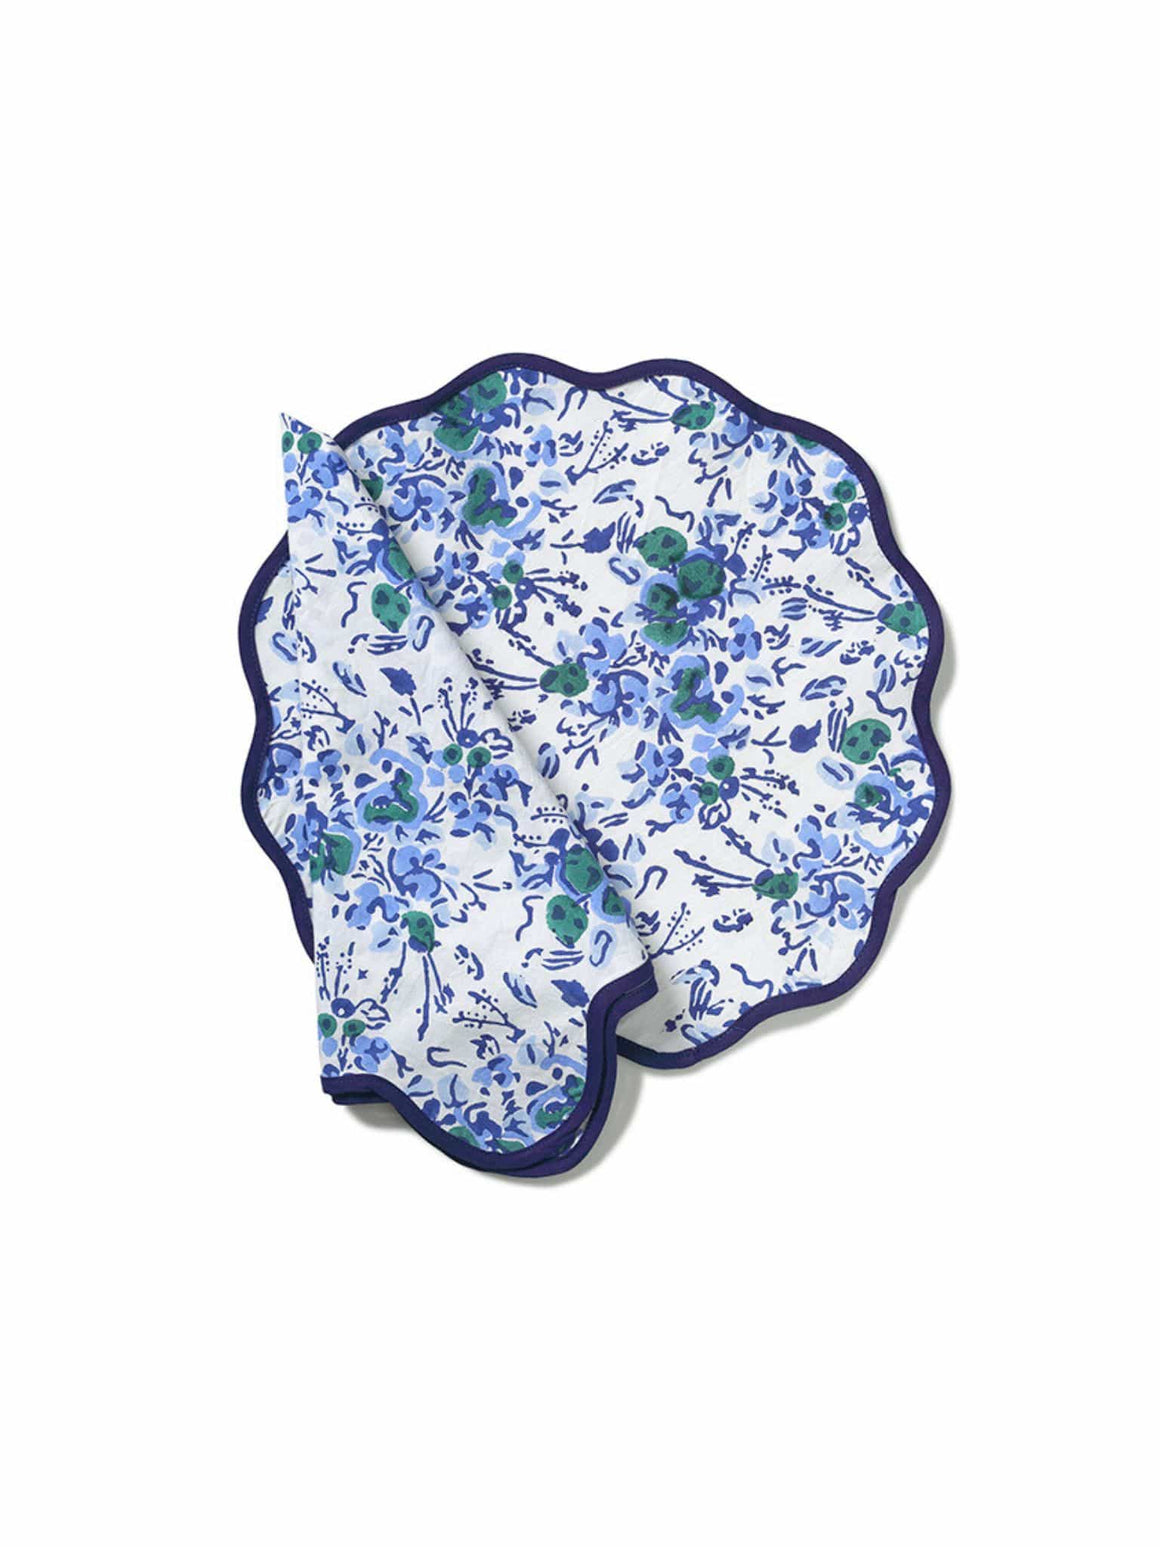 Blue Floral Block Print Scalloped Napkin and Placemat (Set of 4)